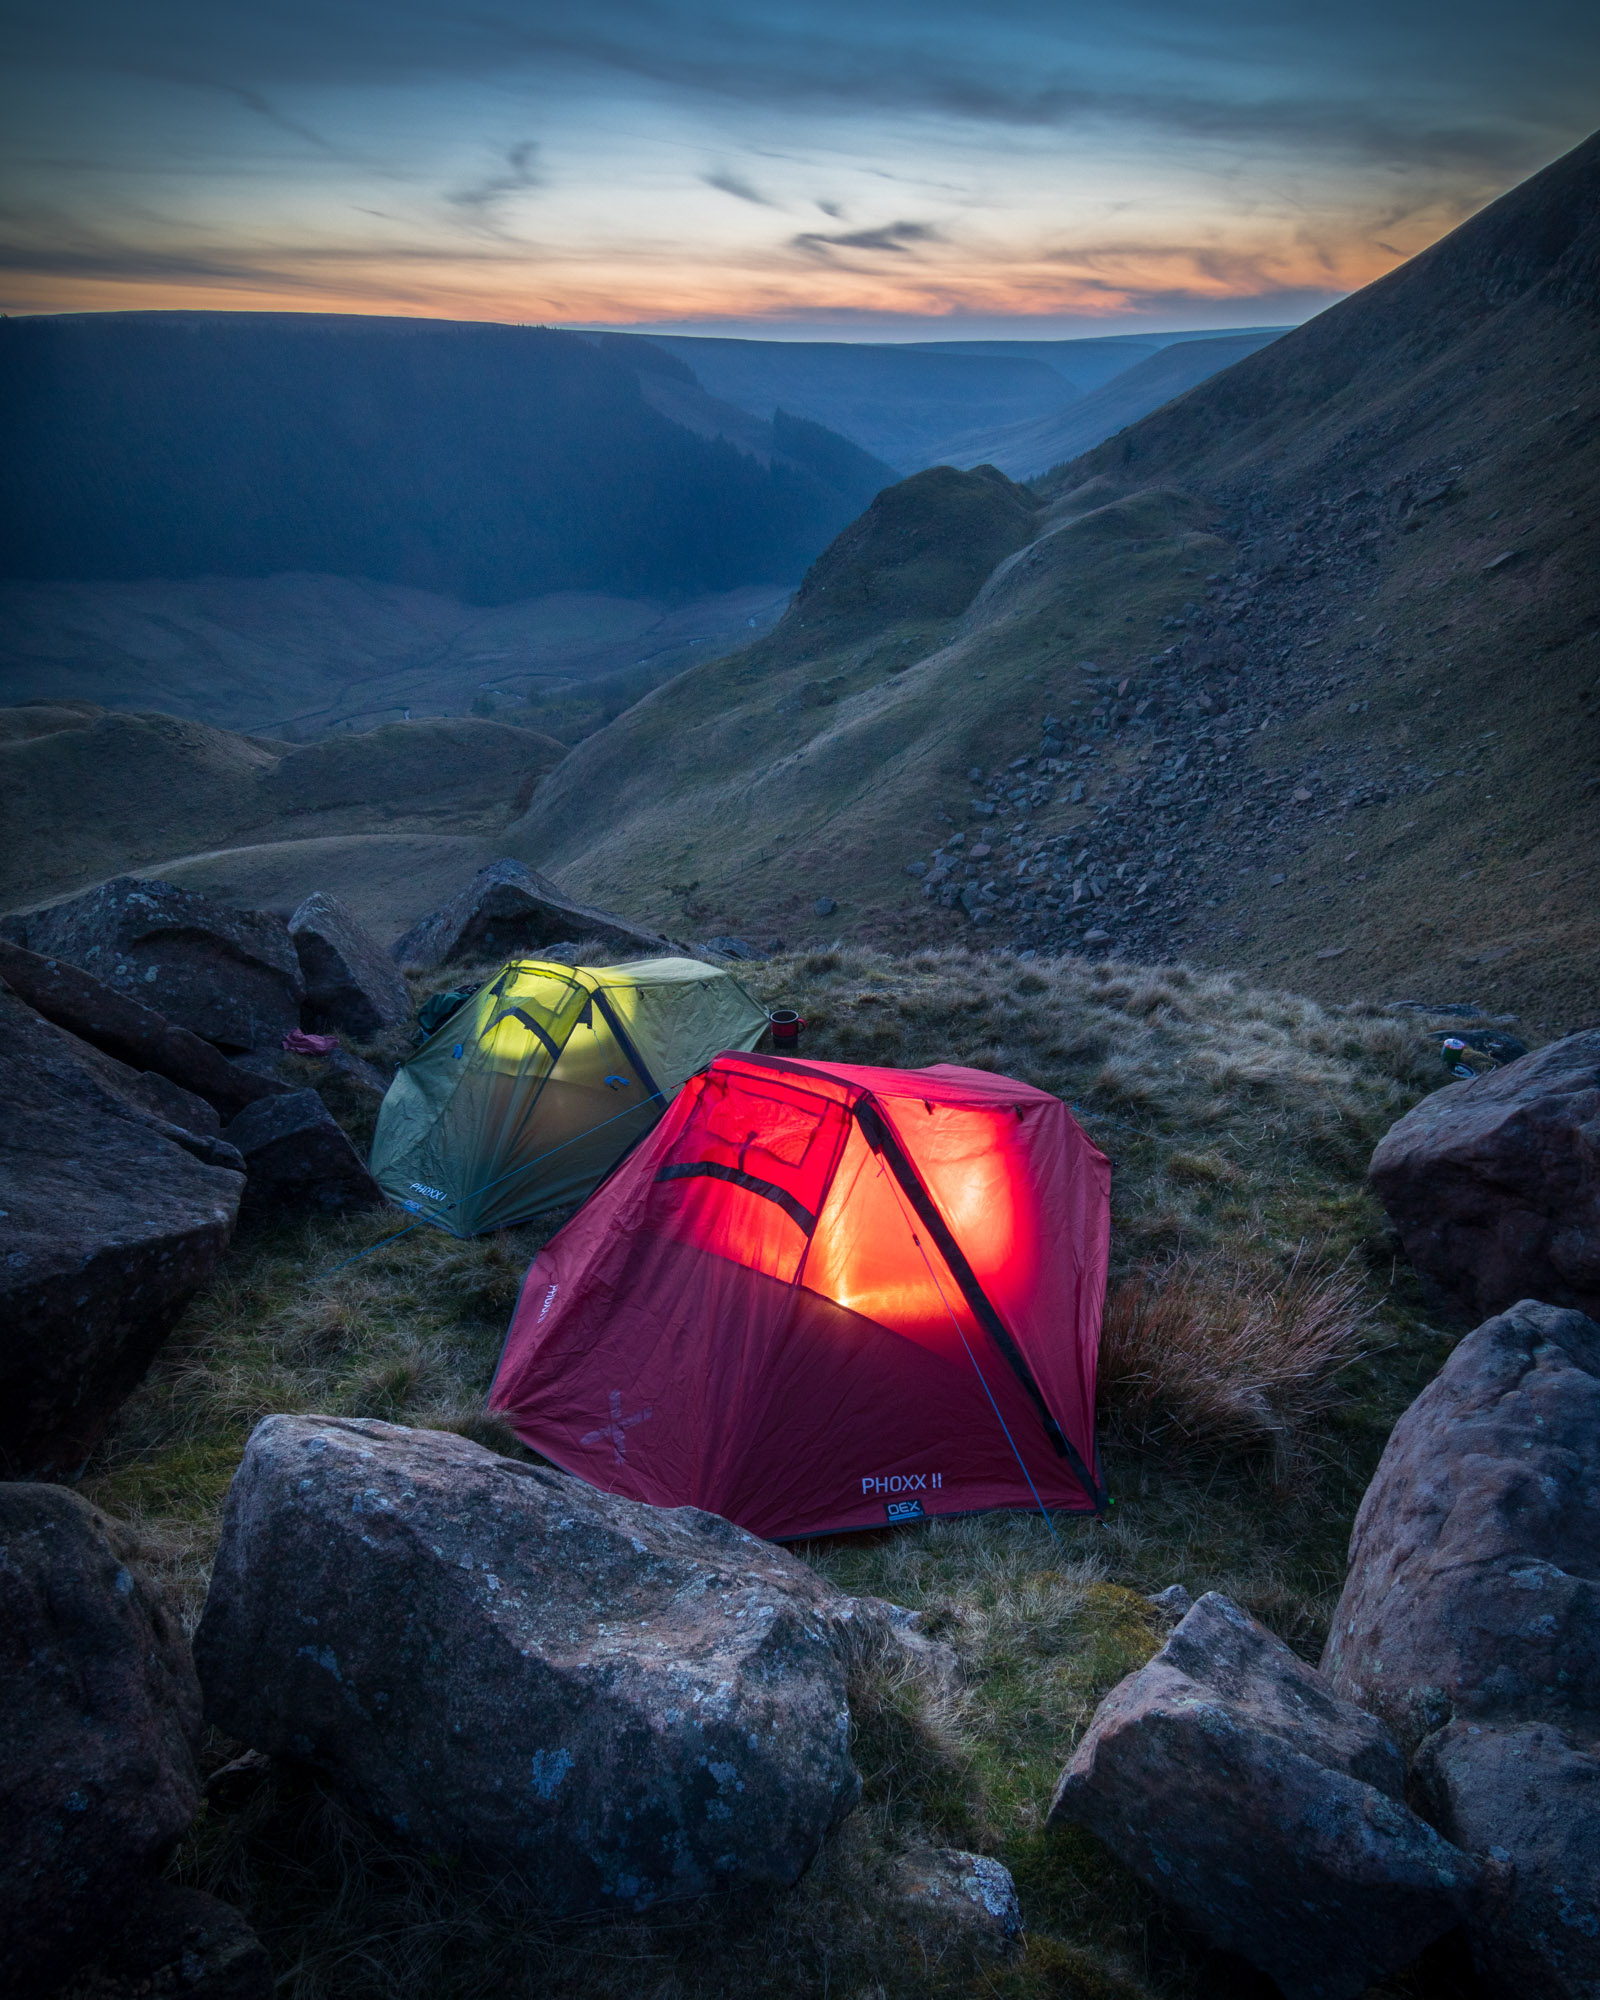 Wild camping in the Peak District, England